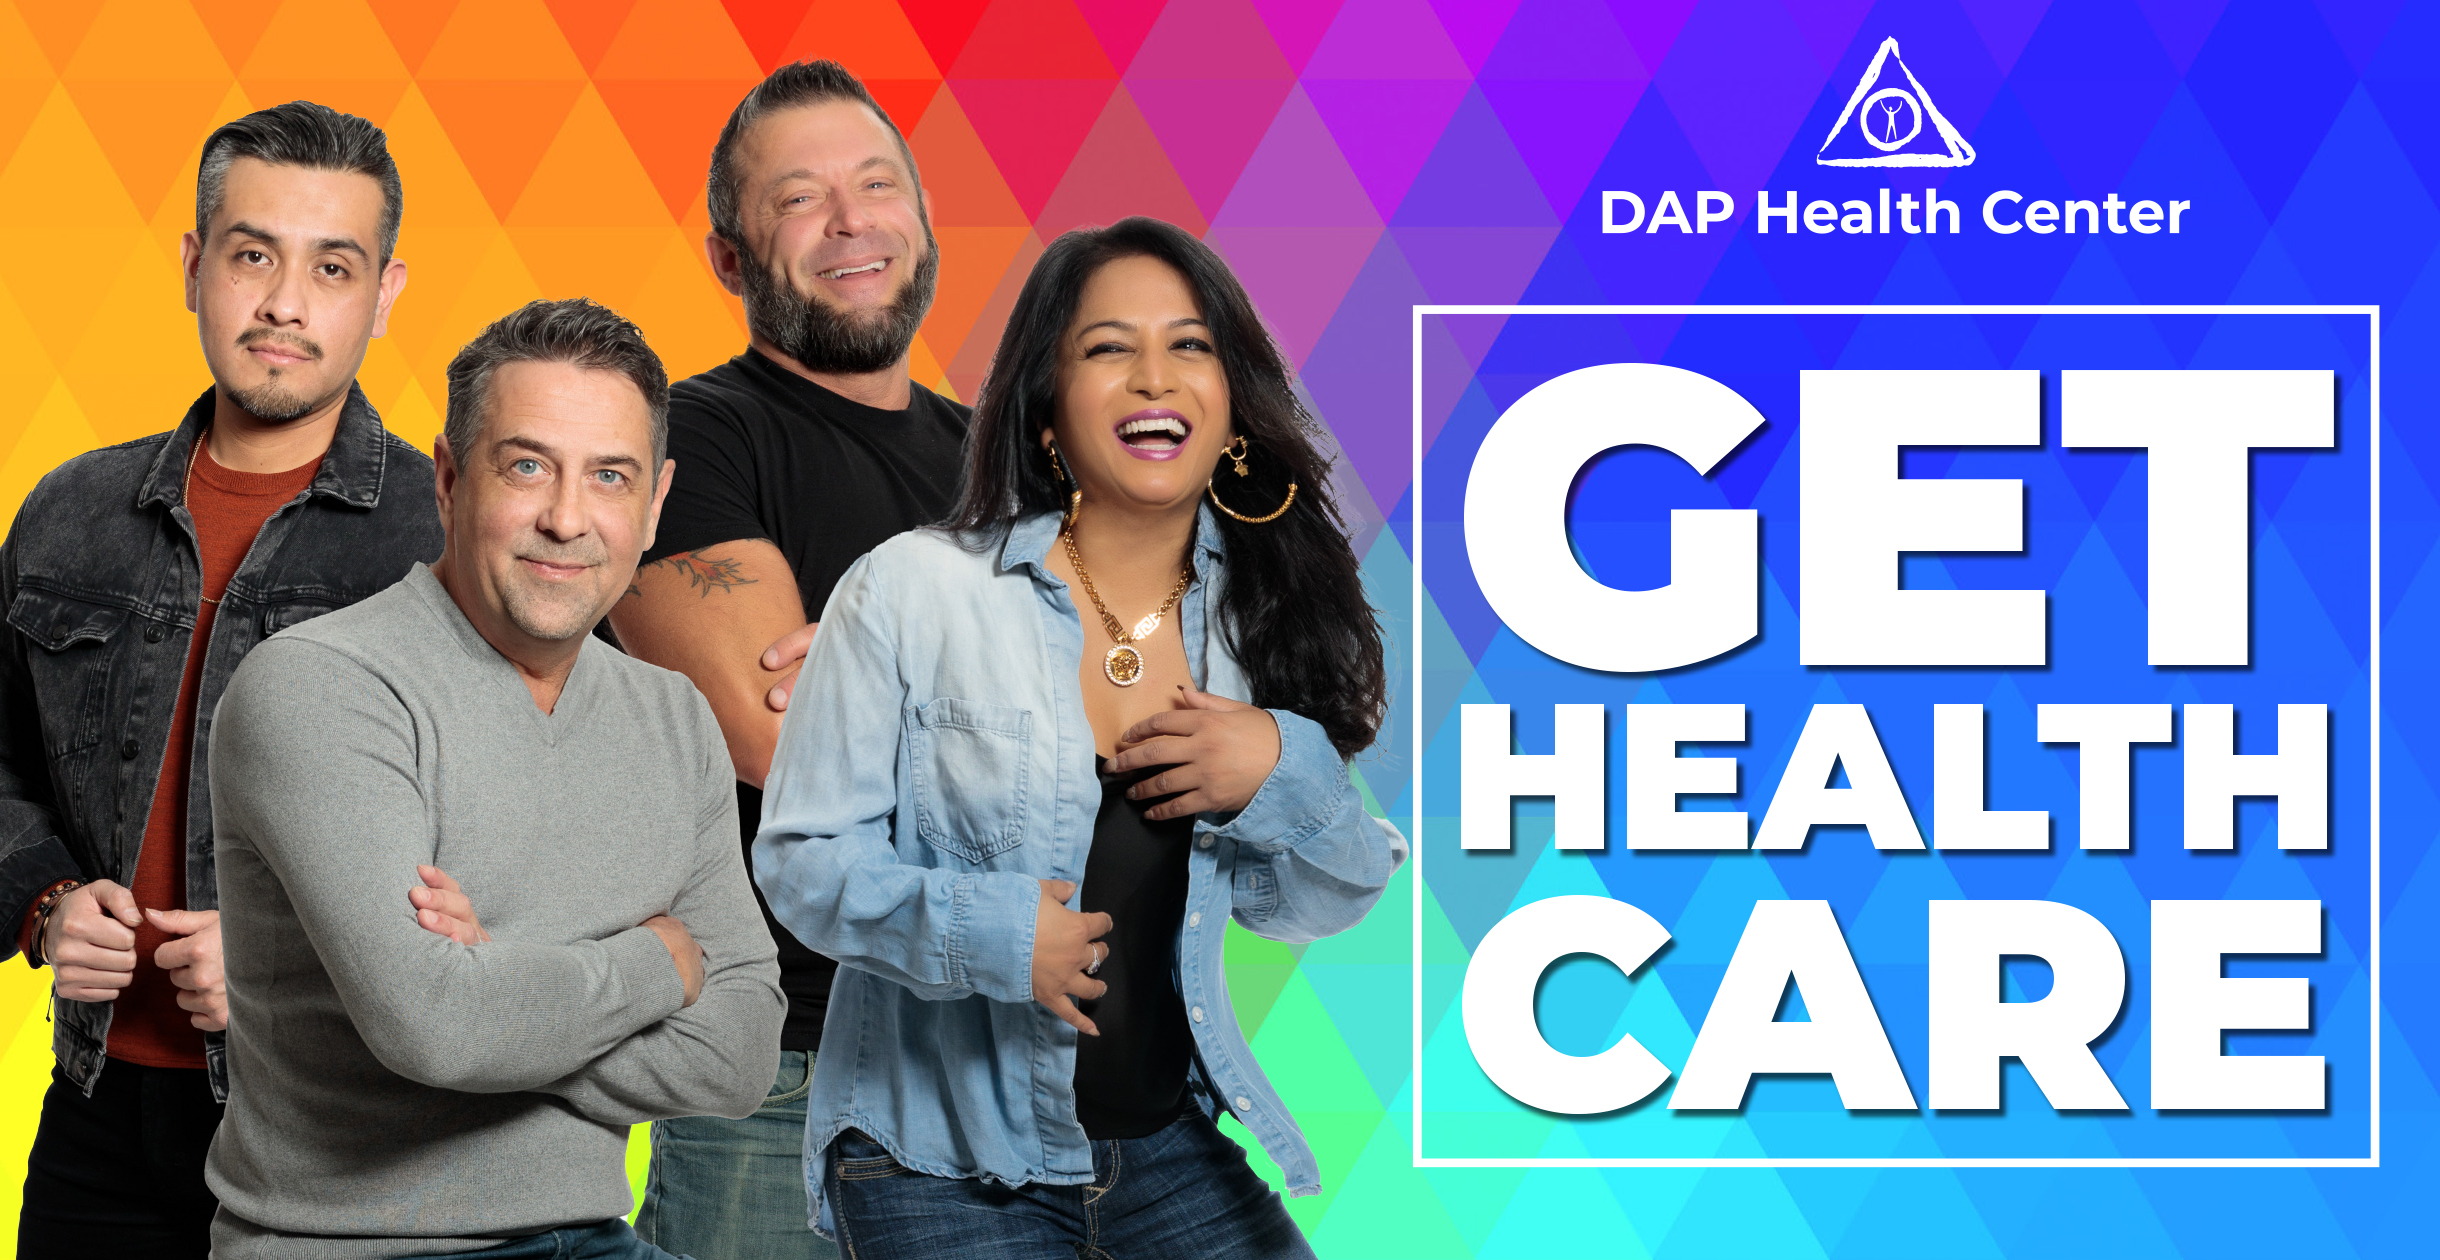 Get Insurance and Care with DAP